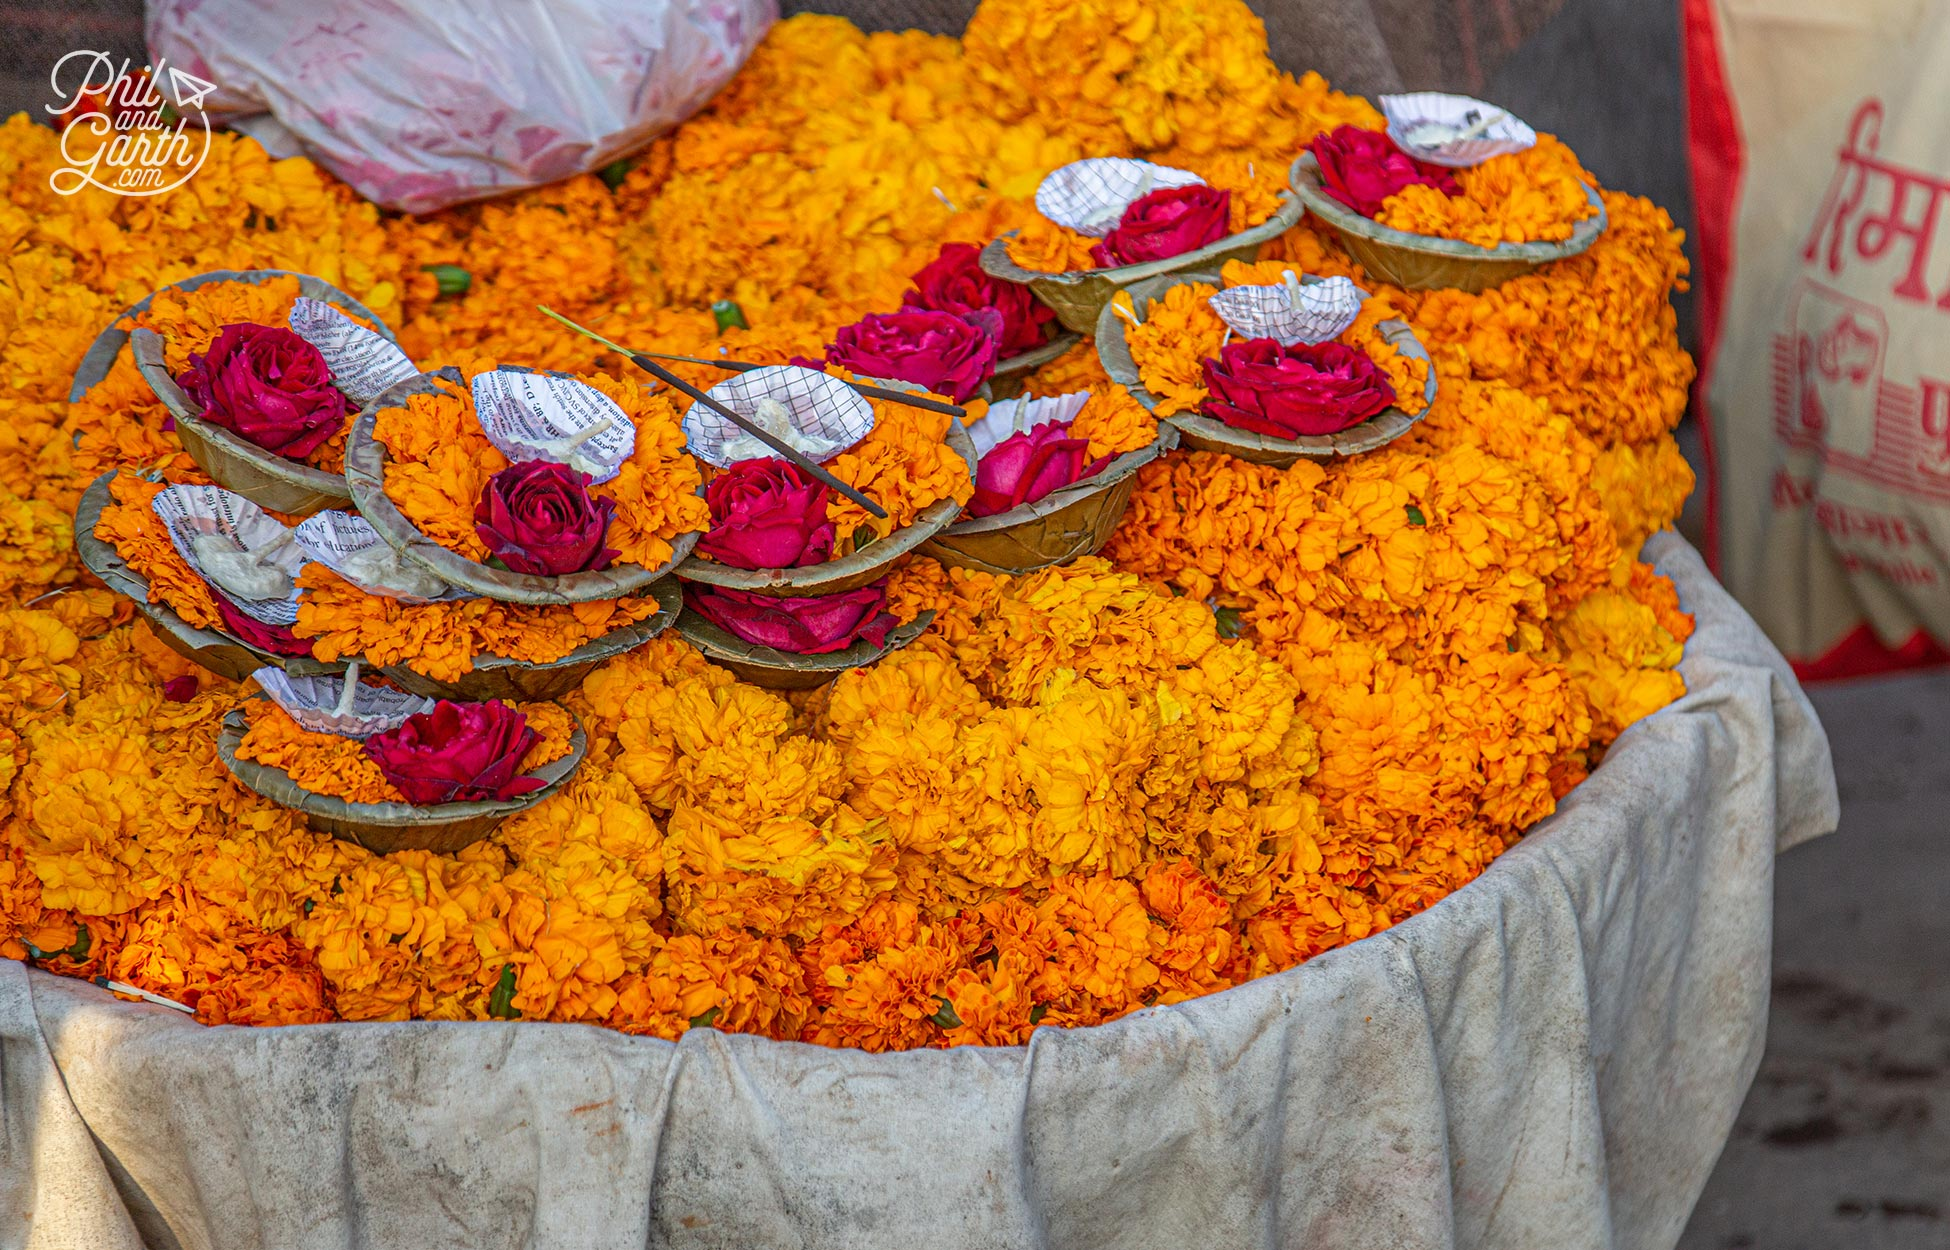 Deepaks for sale - little bowls containing a prayer candle, marigold and rose flowers